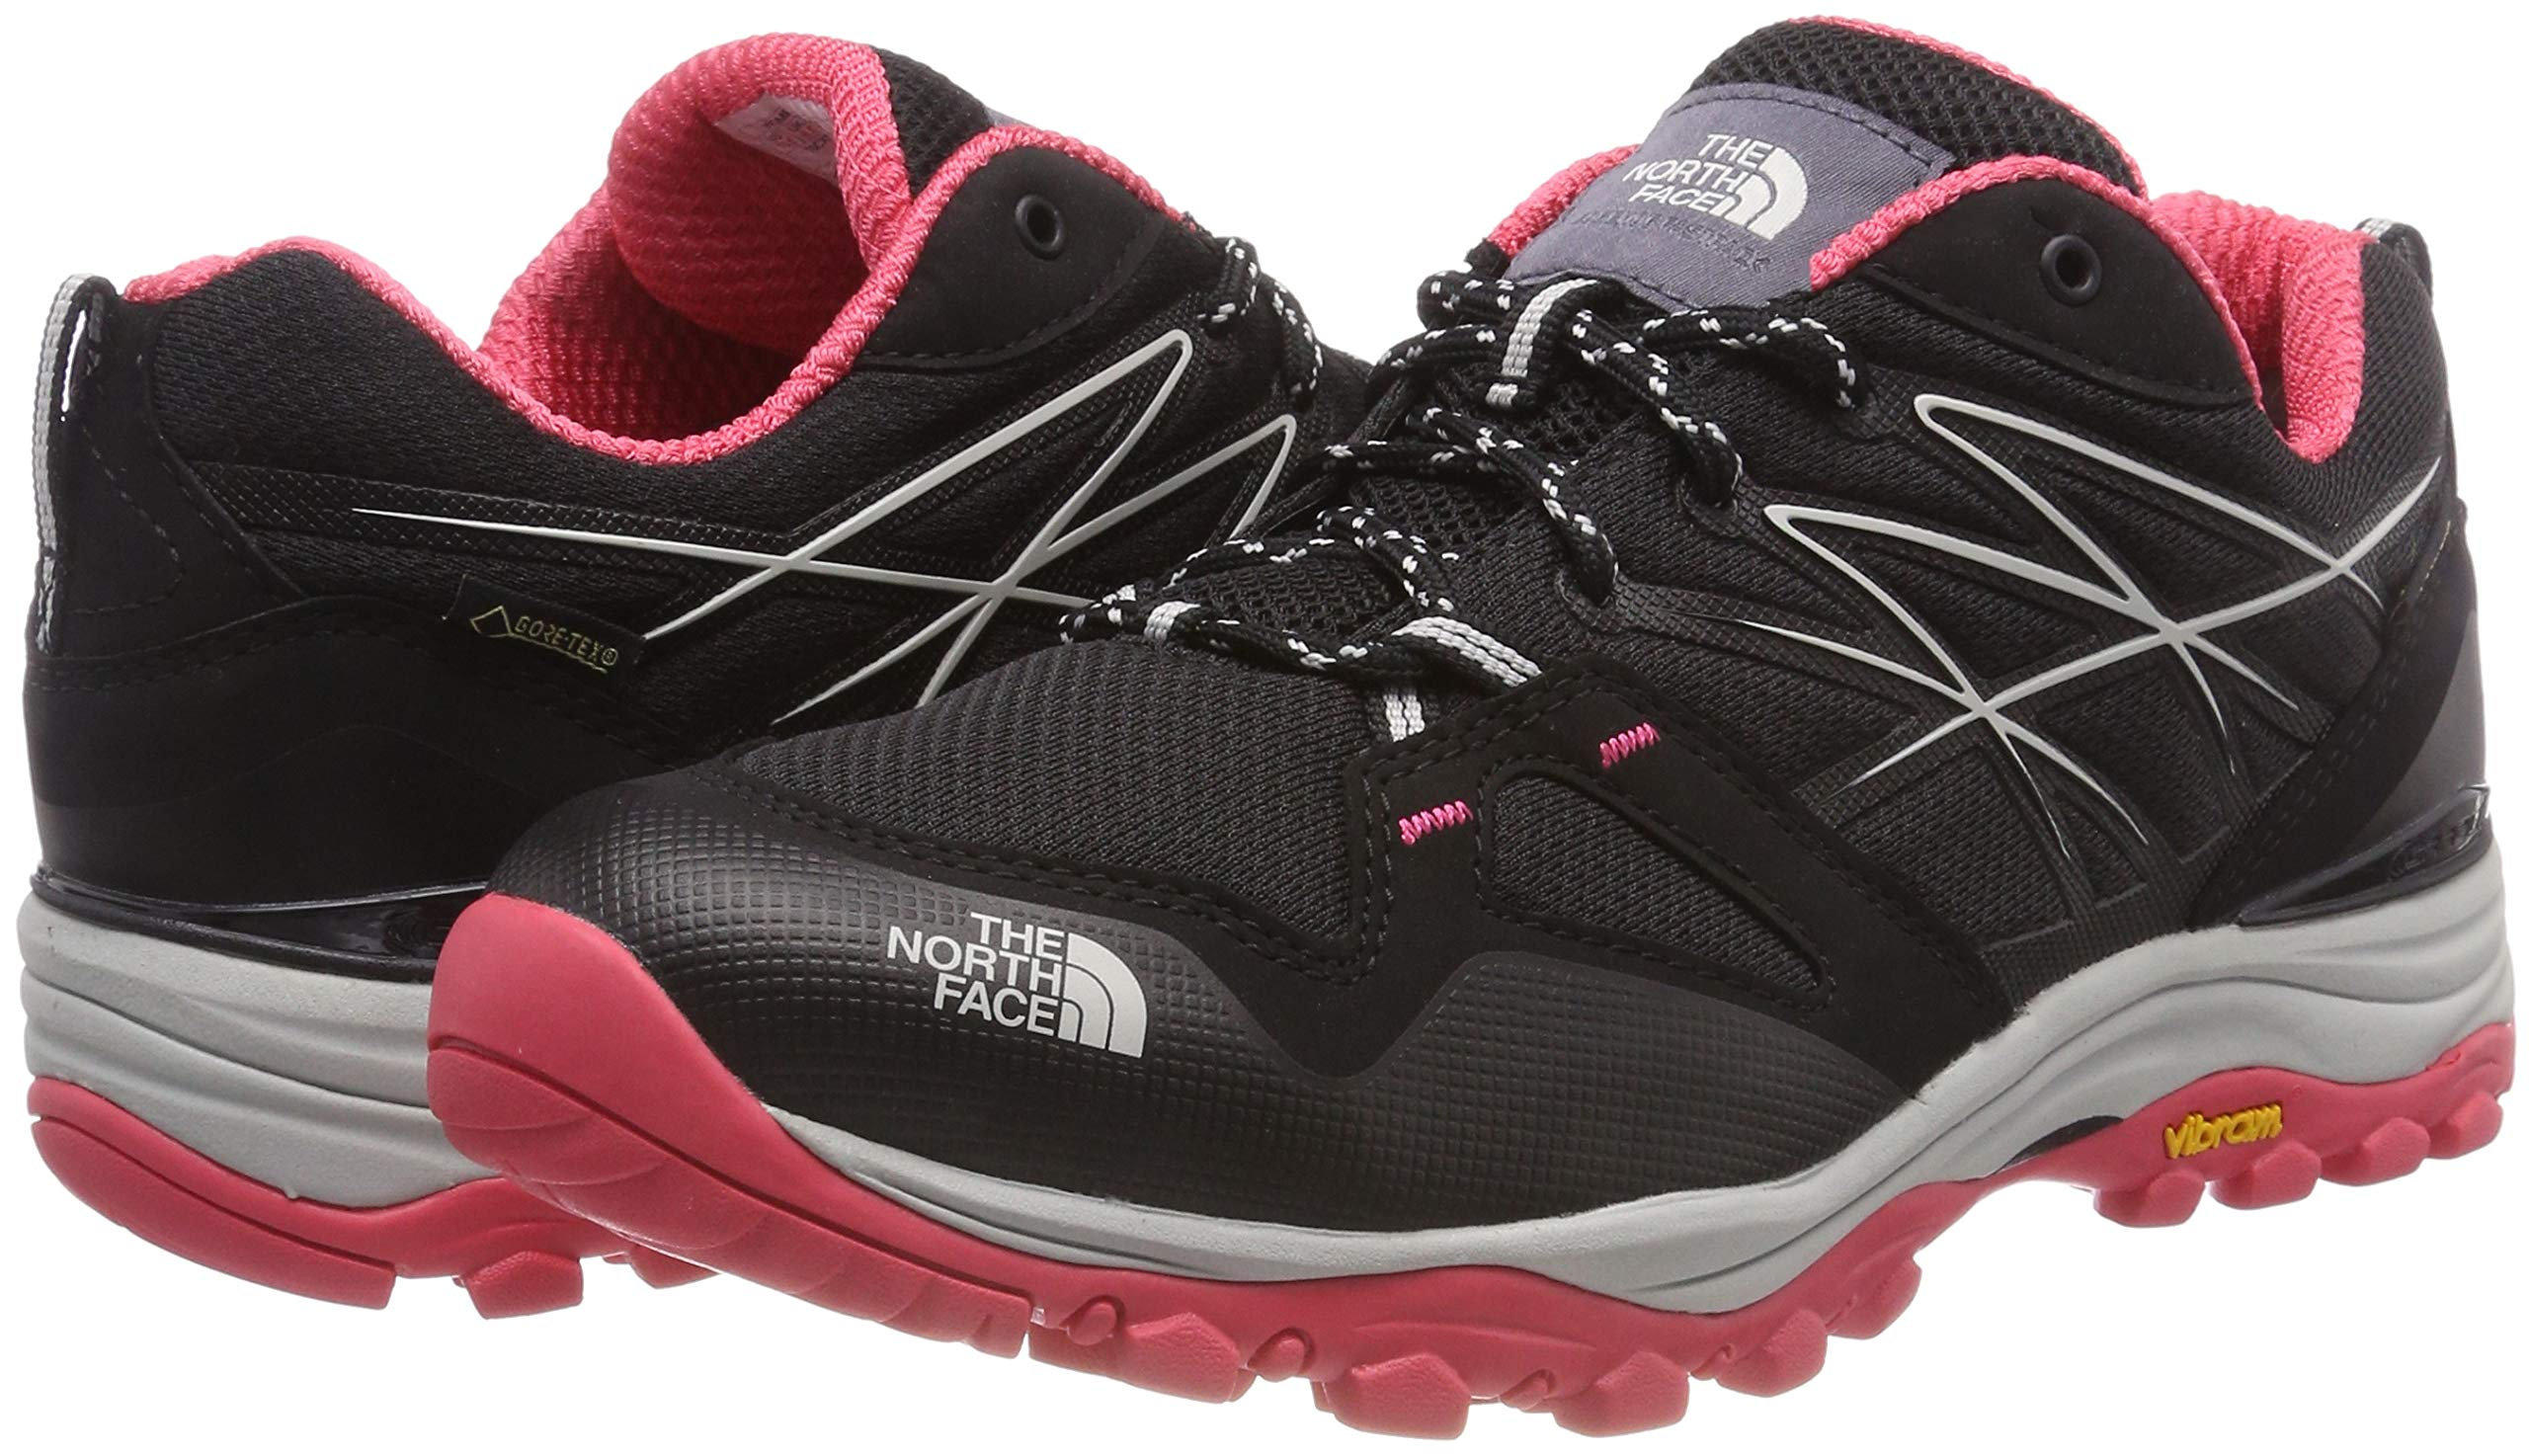 9f17d68a07 THE NORTH FACE Women's Hedgehog Fastpack GTX (EU) Low Rise Hiking Boots